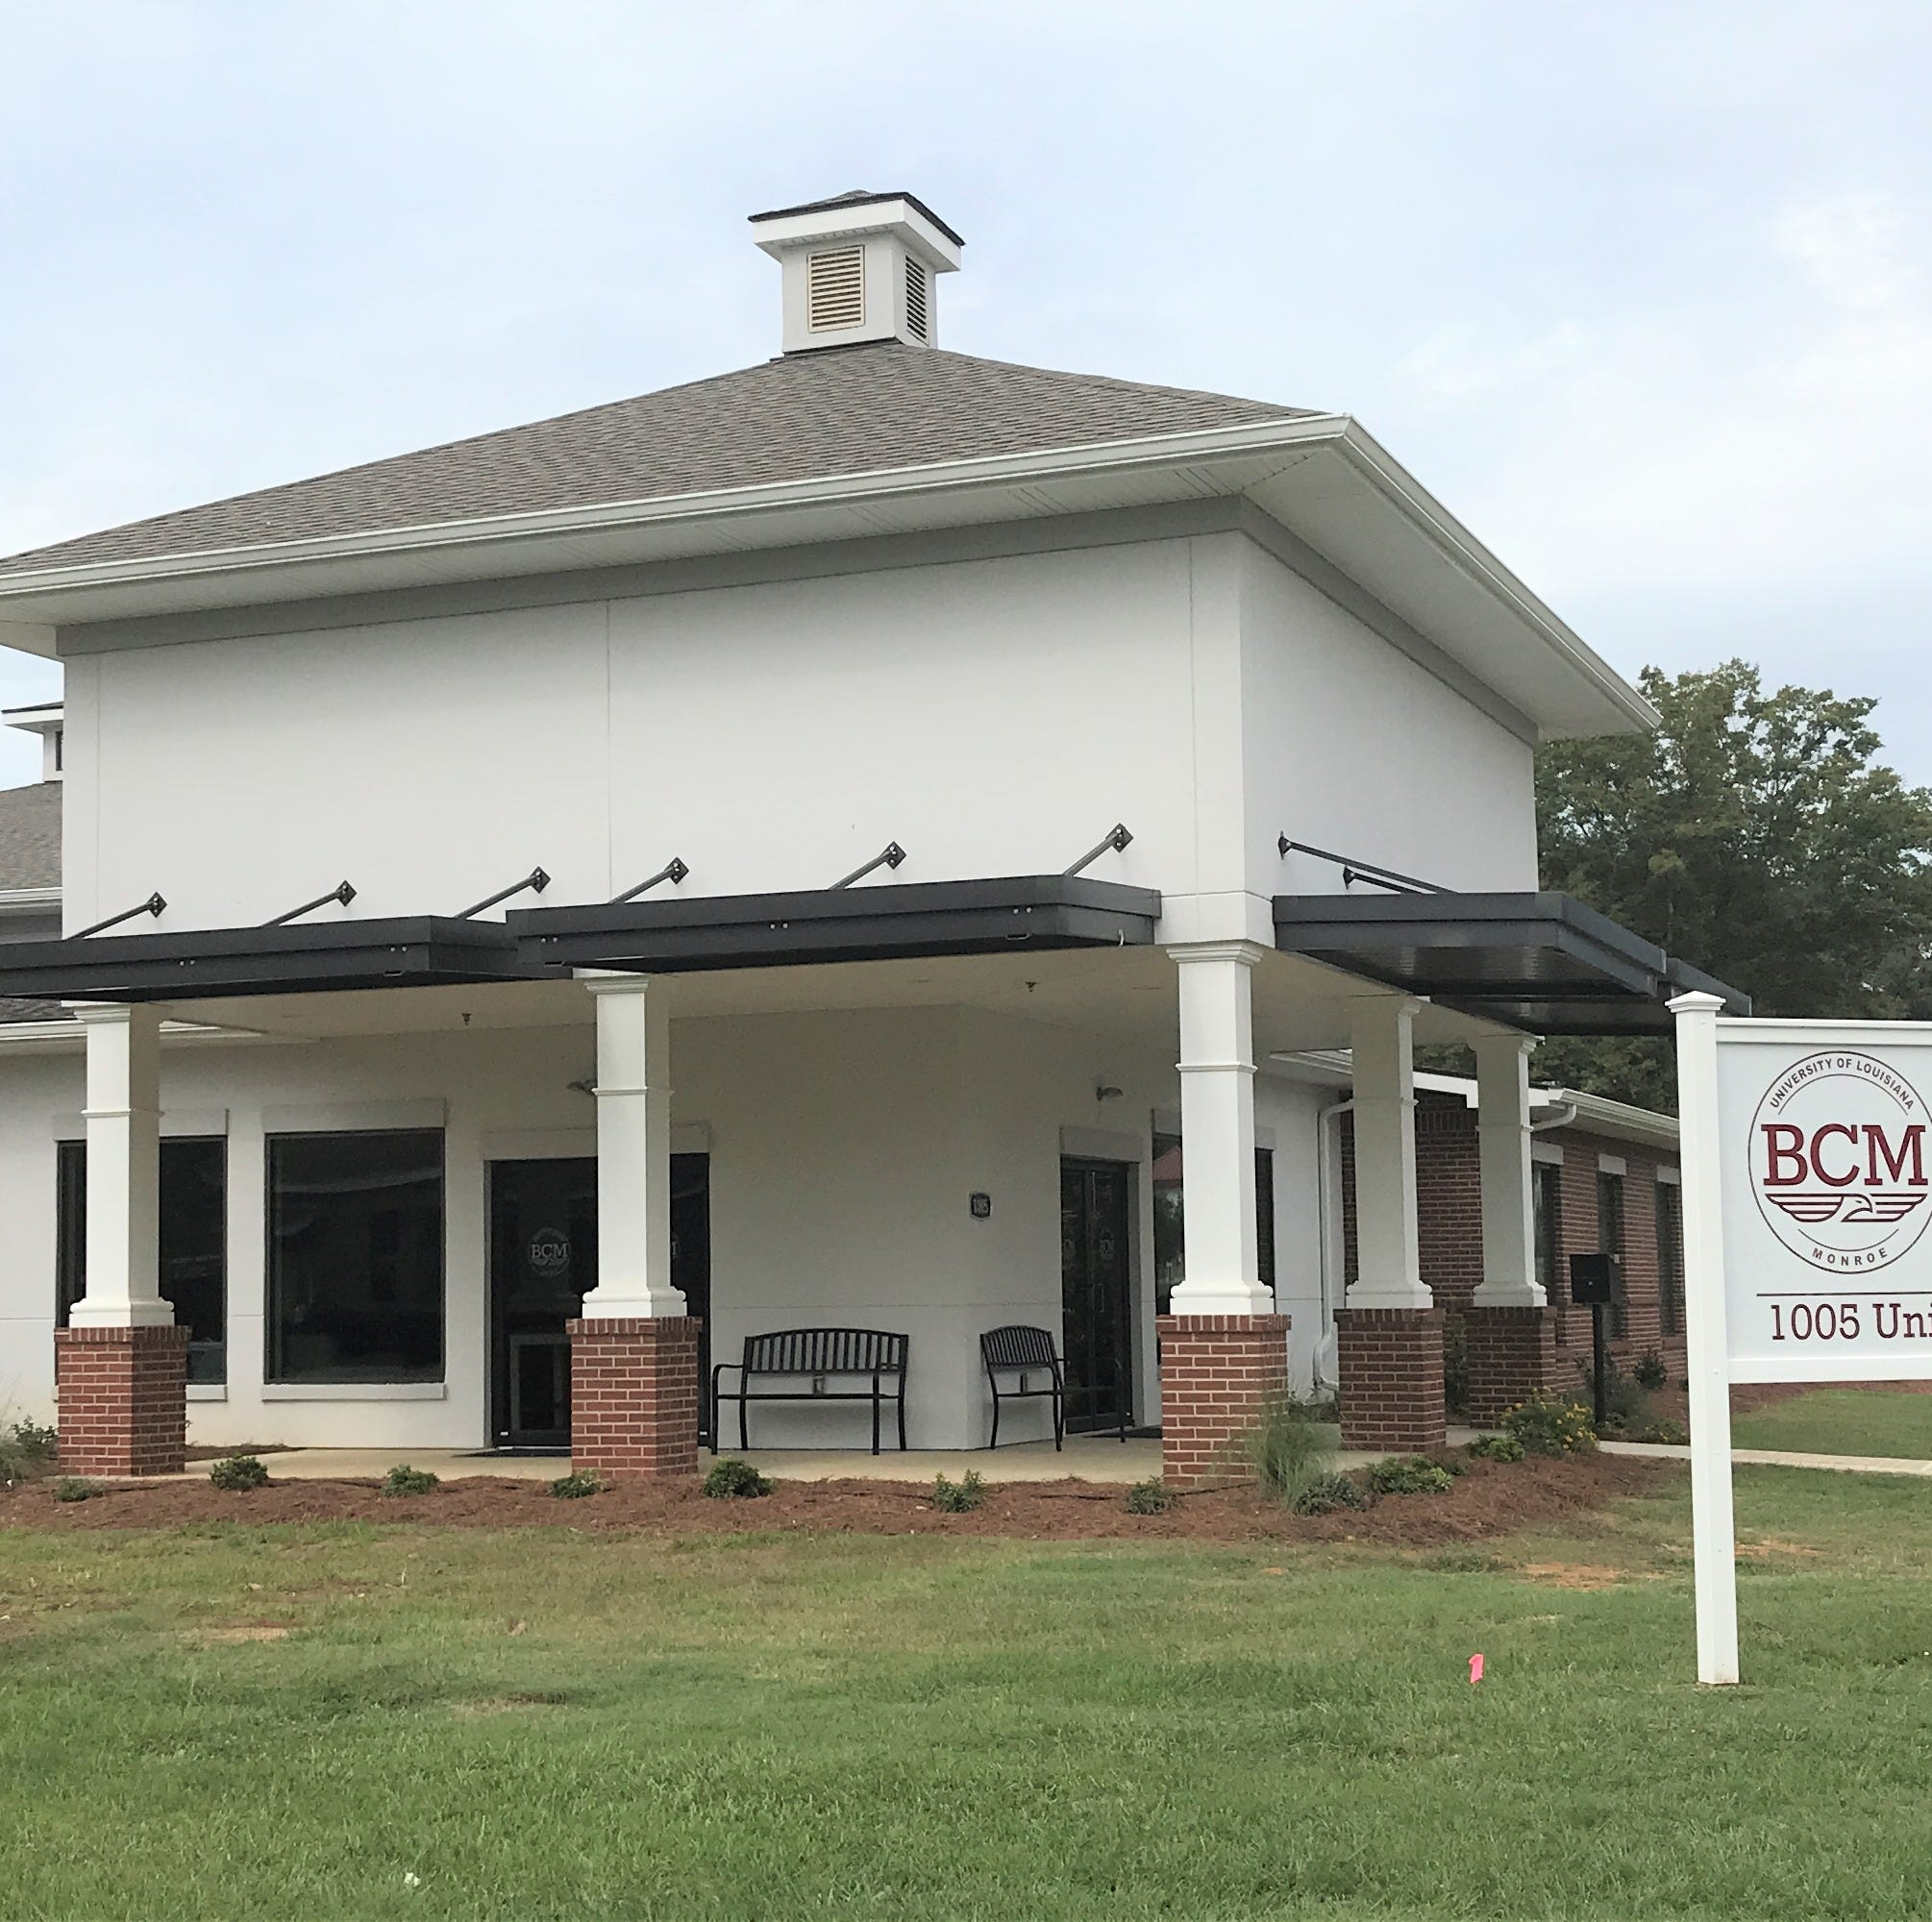 Baptist Collegiate Ministries has finally moved into its new building at the University of Louisiana Monroe.  BCM has operated without a building since its previous facility was demolished three years ago.